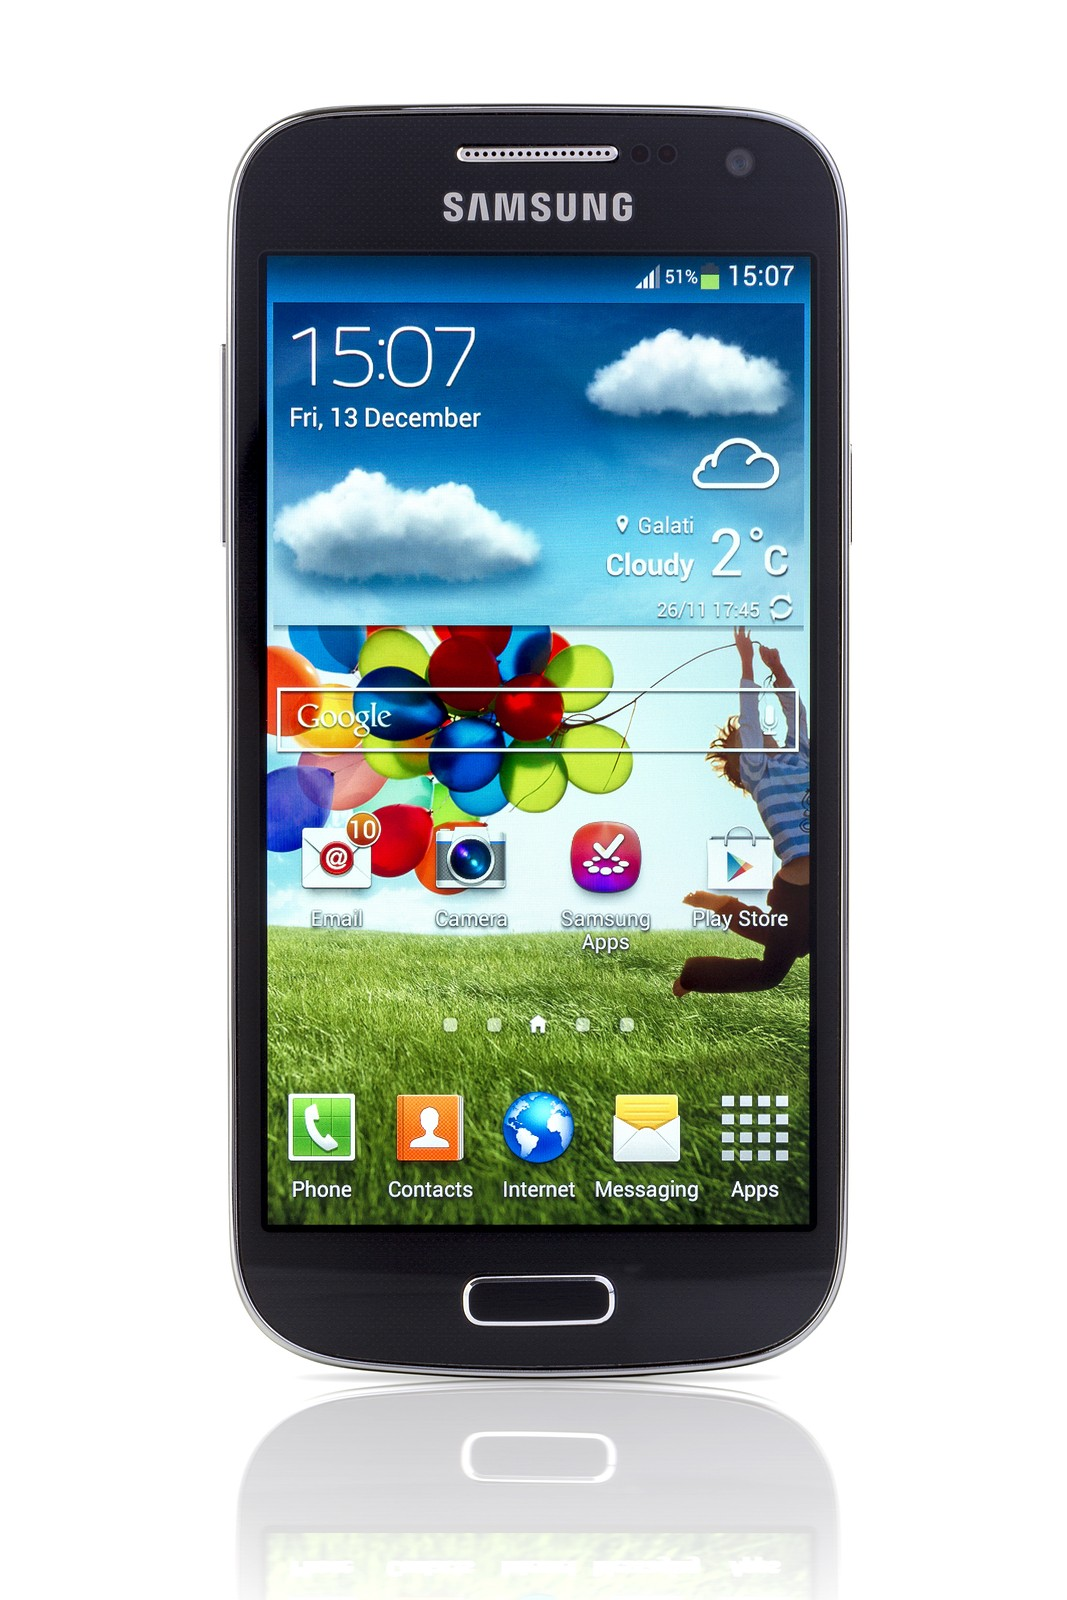 Samsung Android smartphone